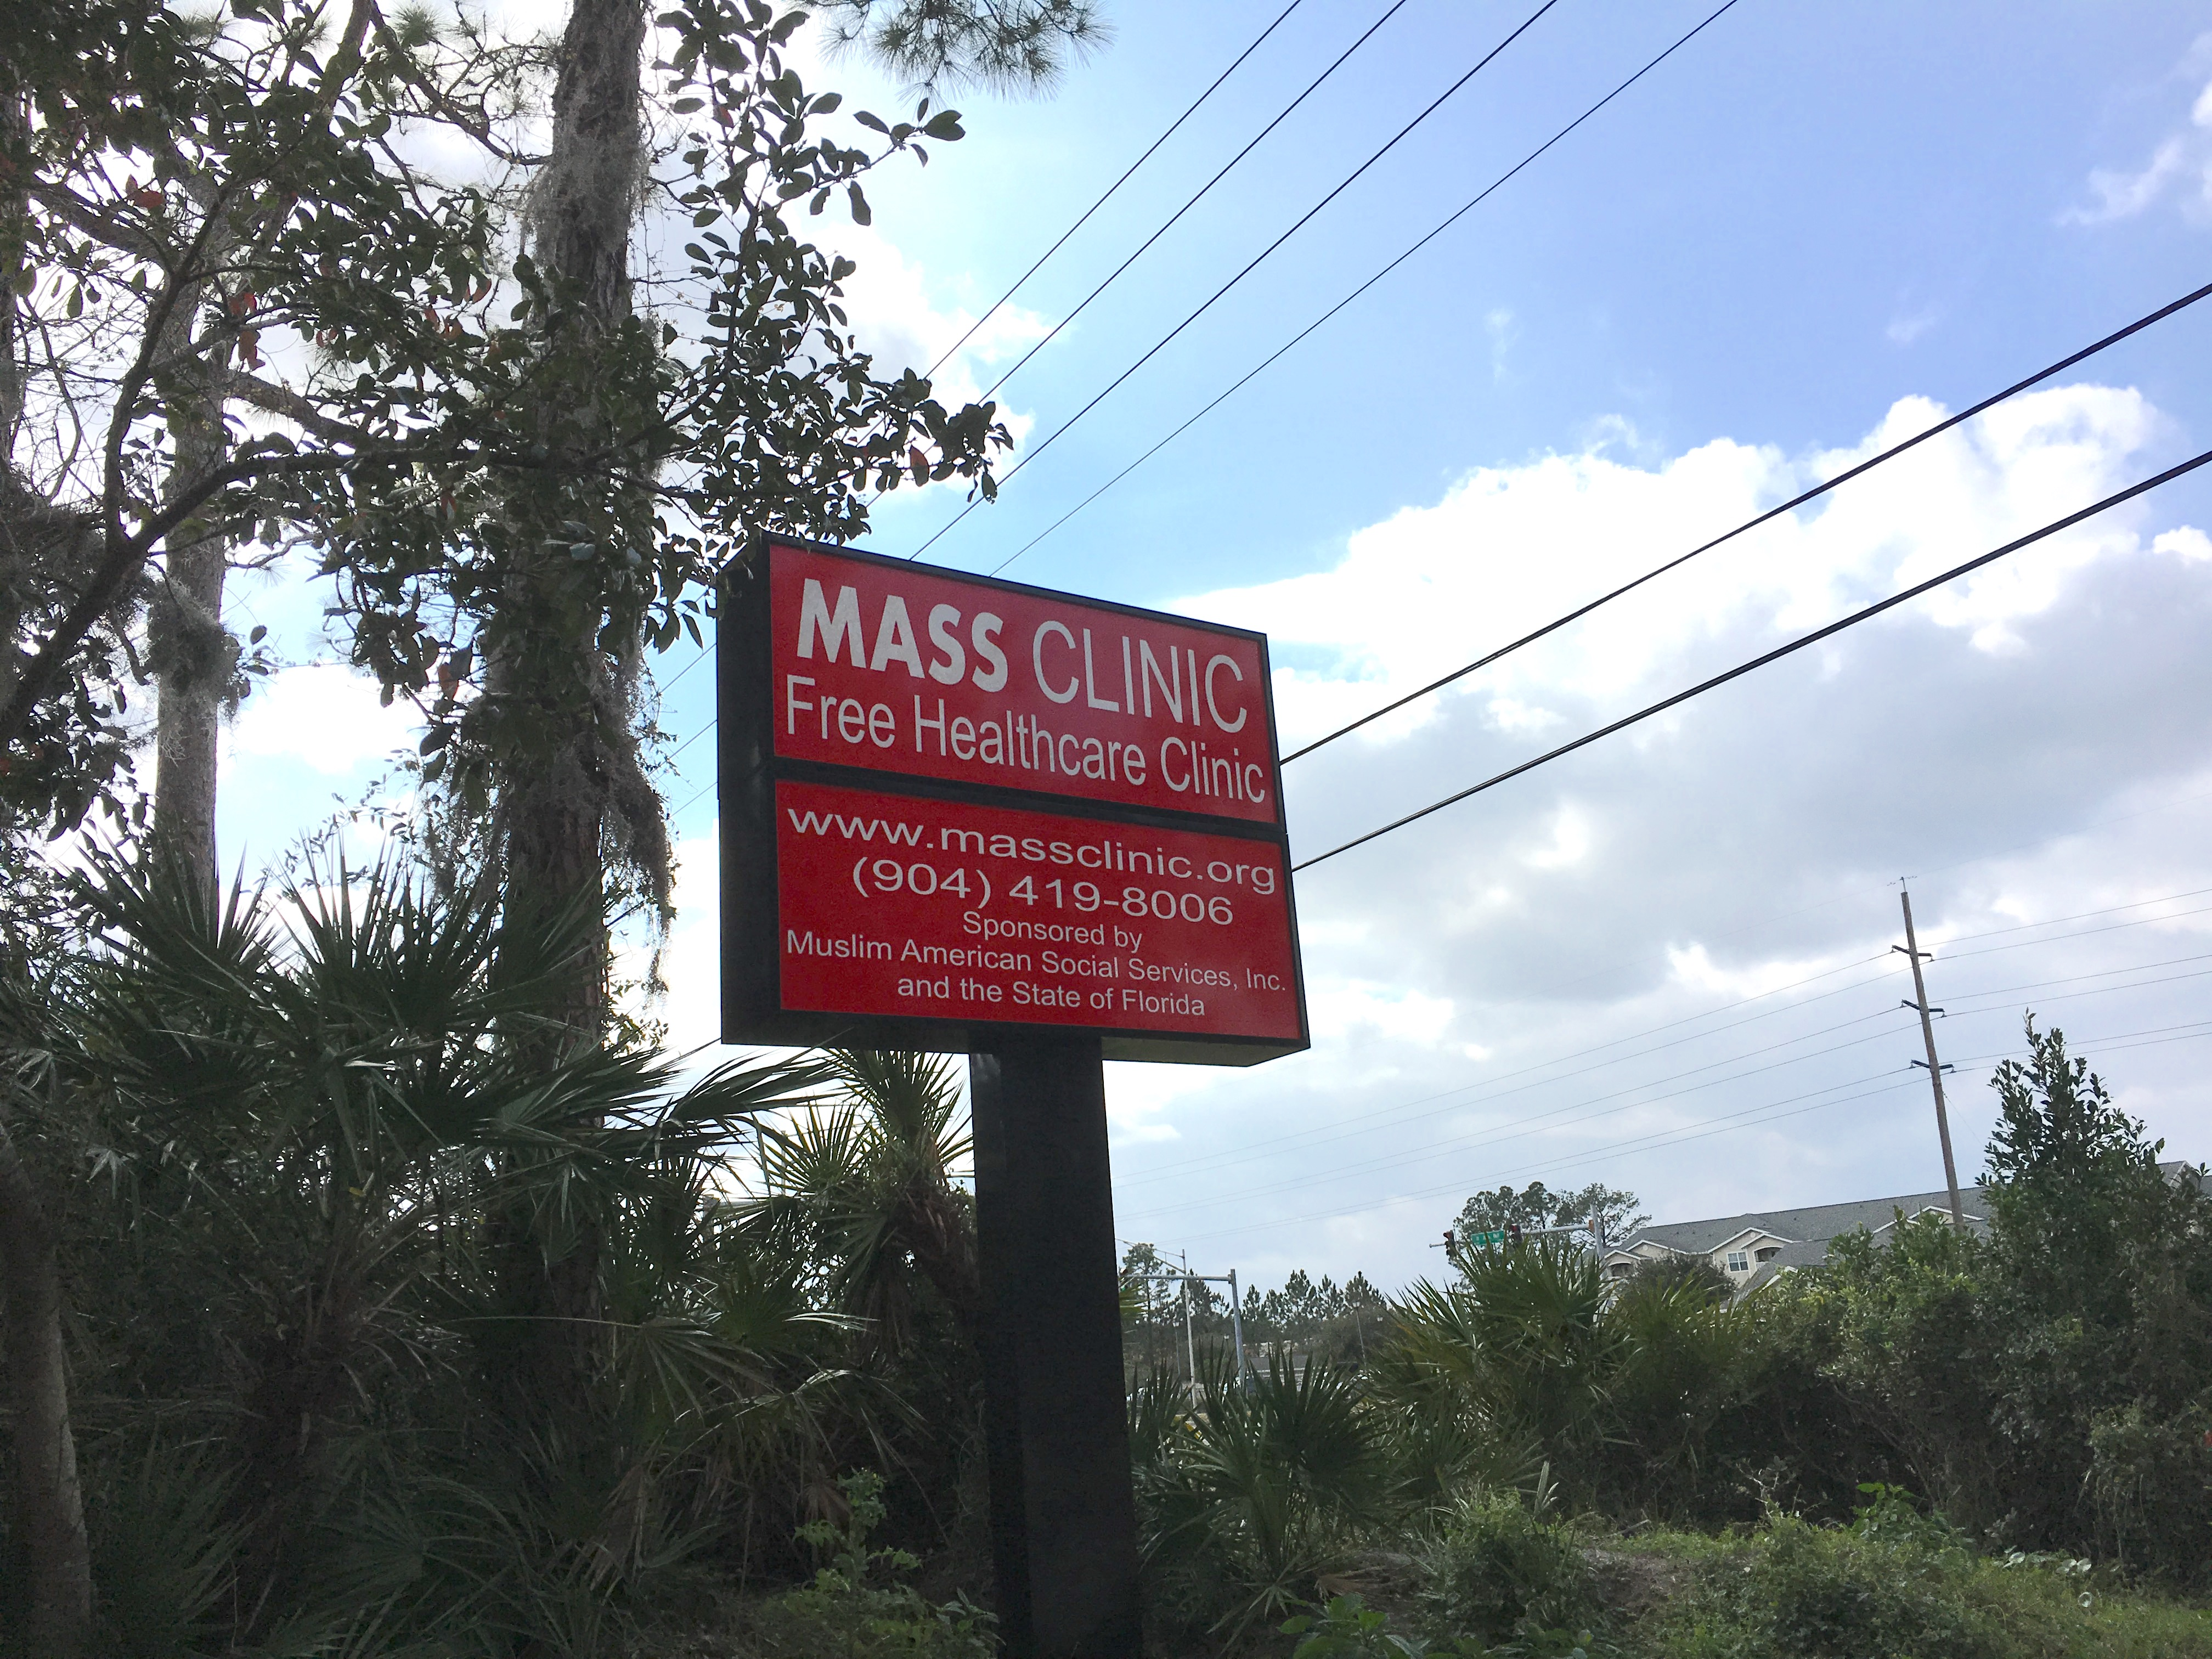 Muslim American Social Services clinic in Jacksonville, FL